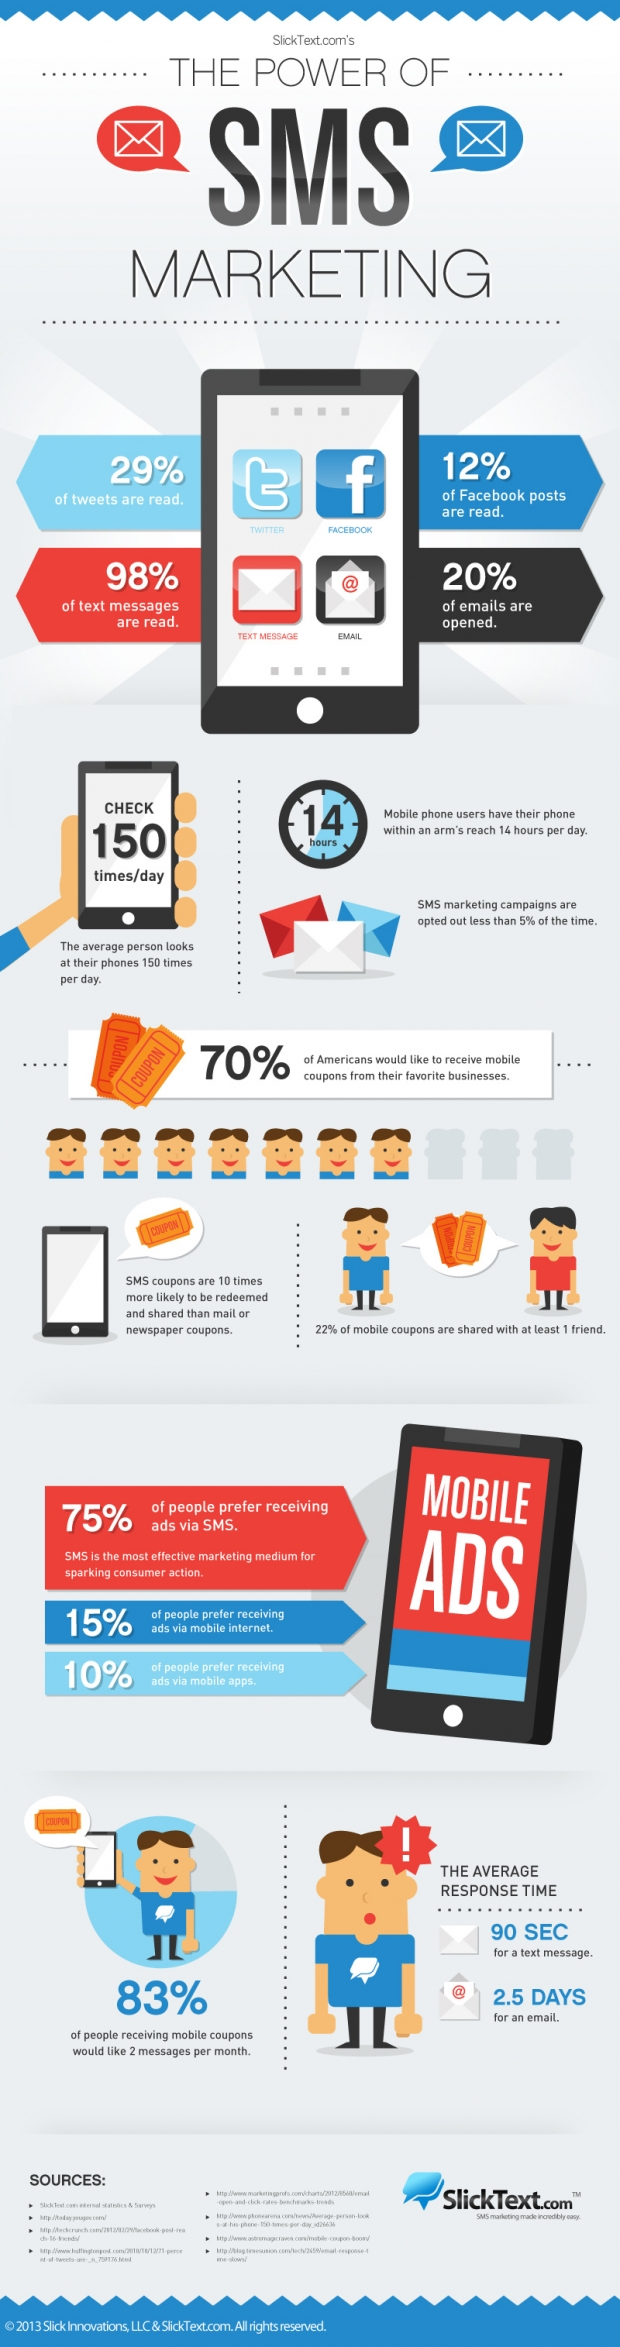 620x2347xsms-marketing-infographic-620x2347